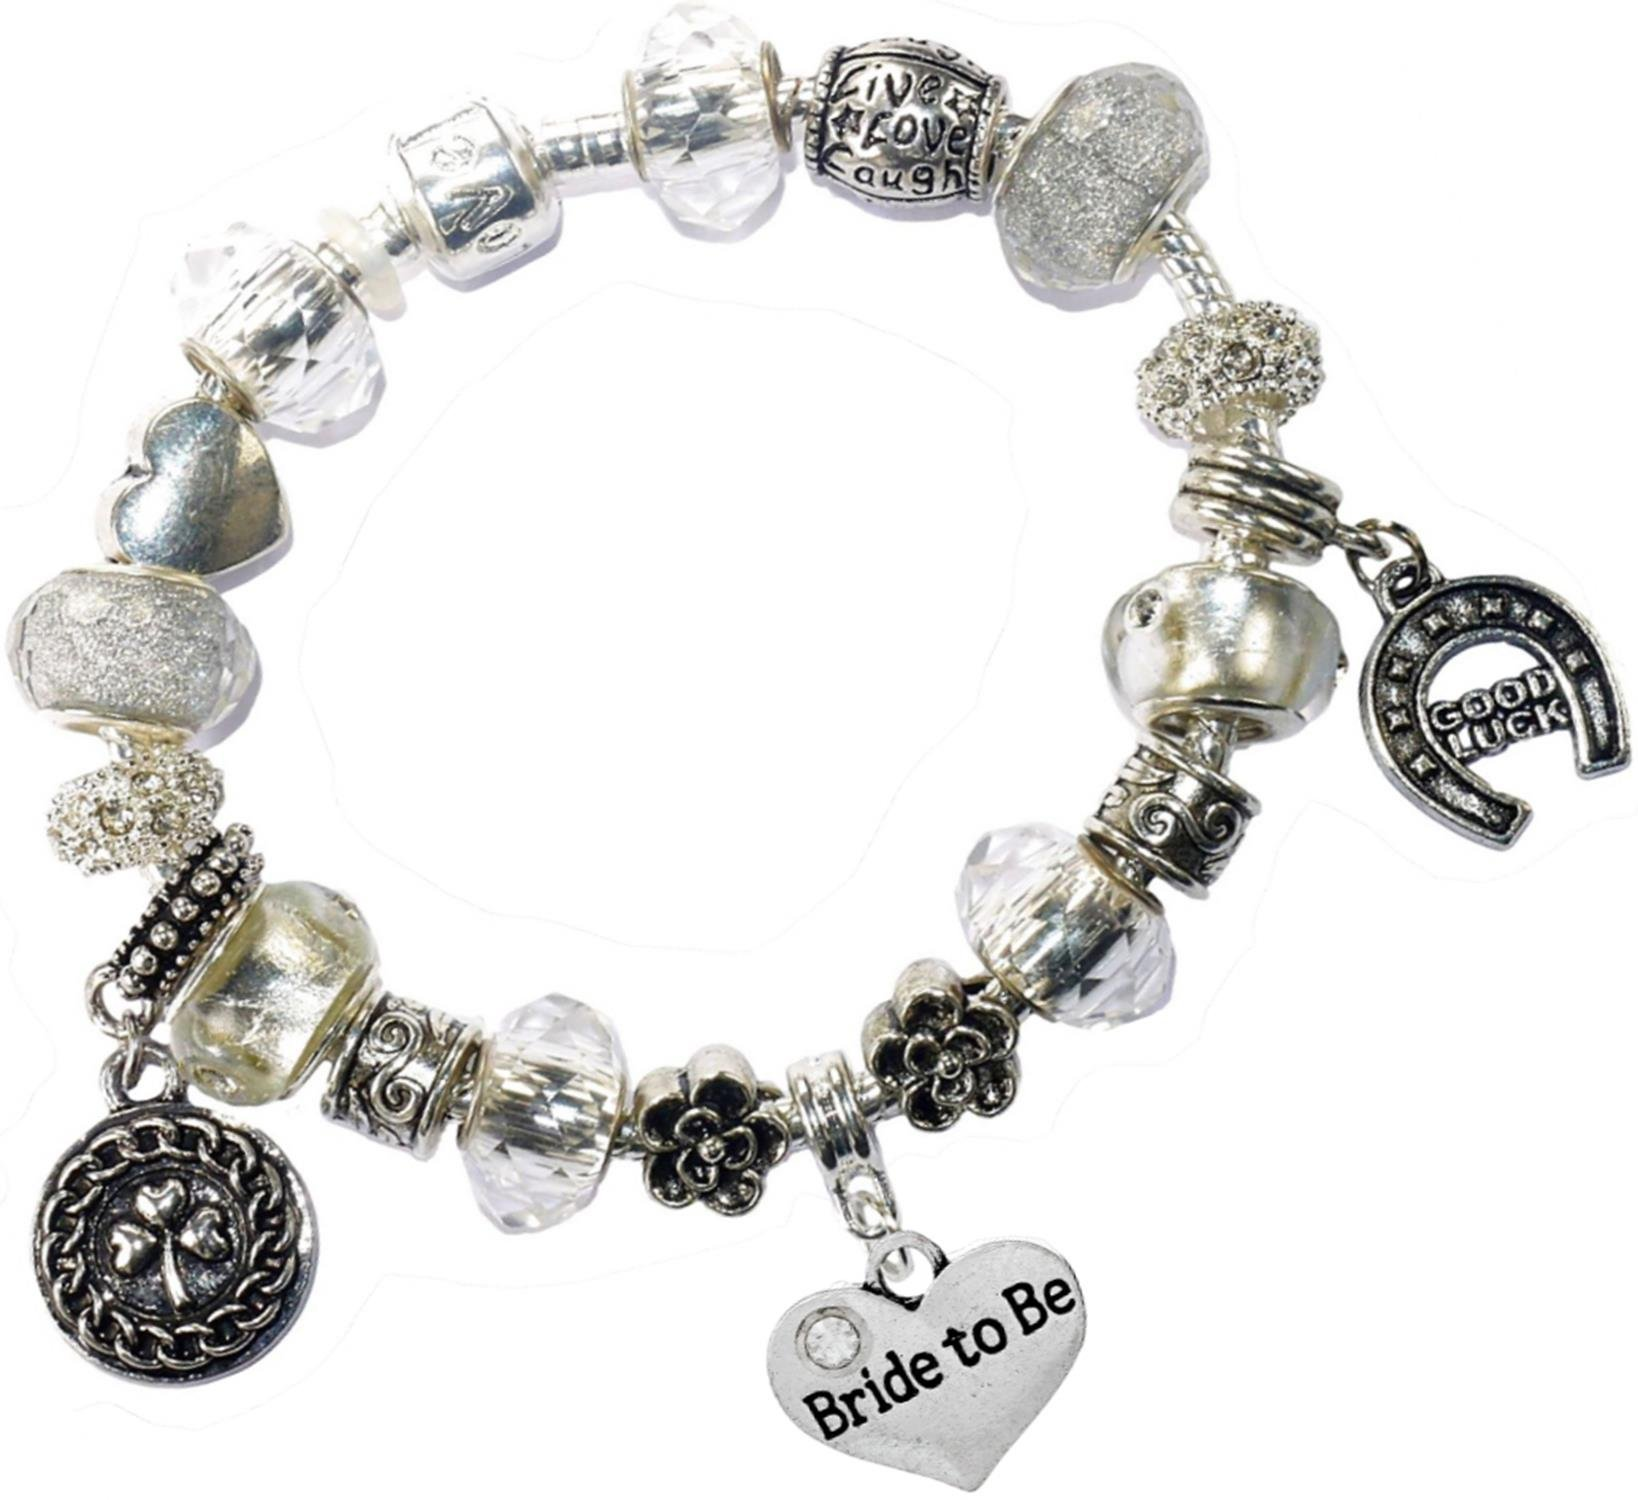 Charm Buddy Bride To Be Bridal Good Luck Lucky Iced Silver Pandora Style Bracelet Charms Gift Box Wedding